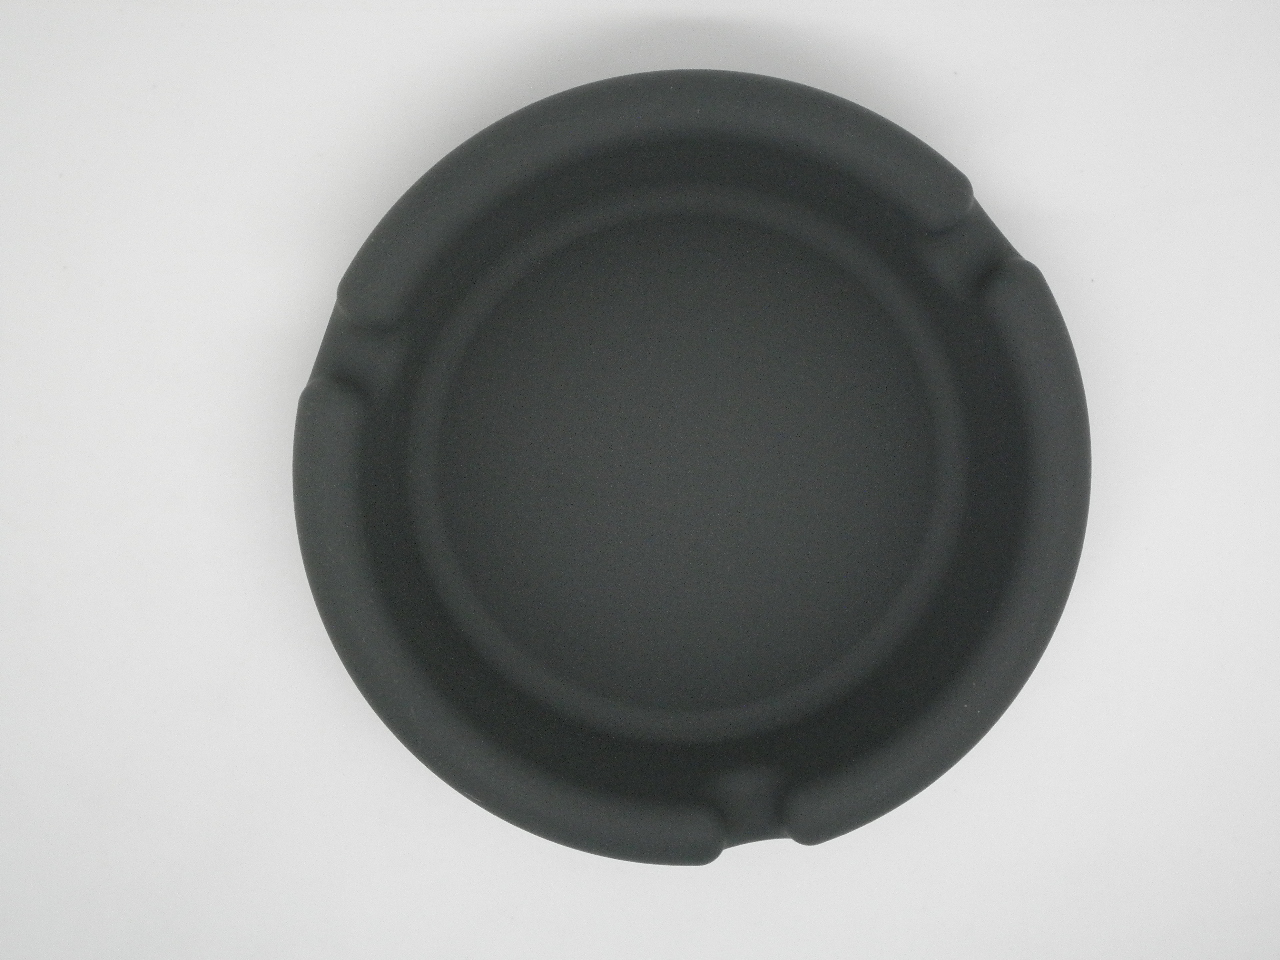 http://www.refinehksilicone.cn/data/images/product/20180417101650_529.JPG